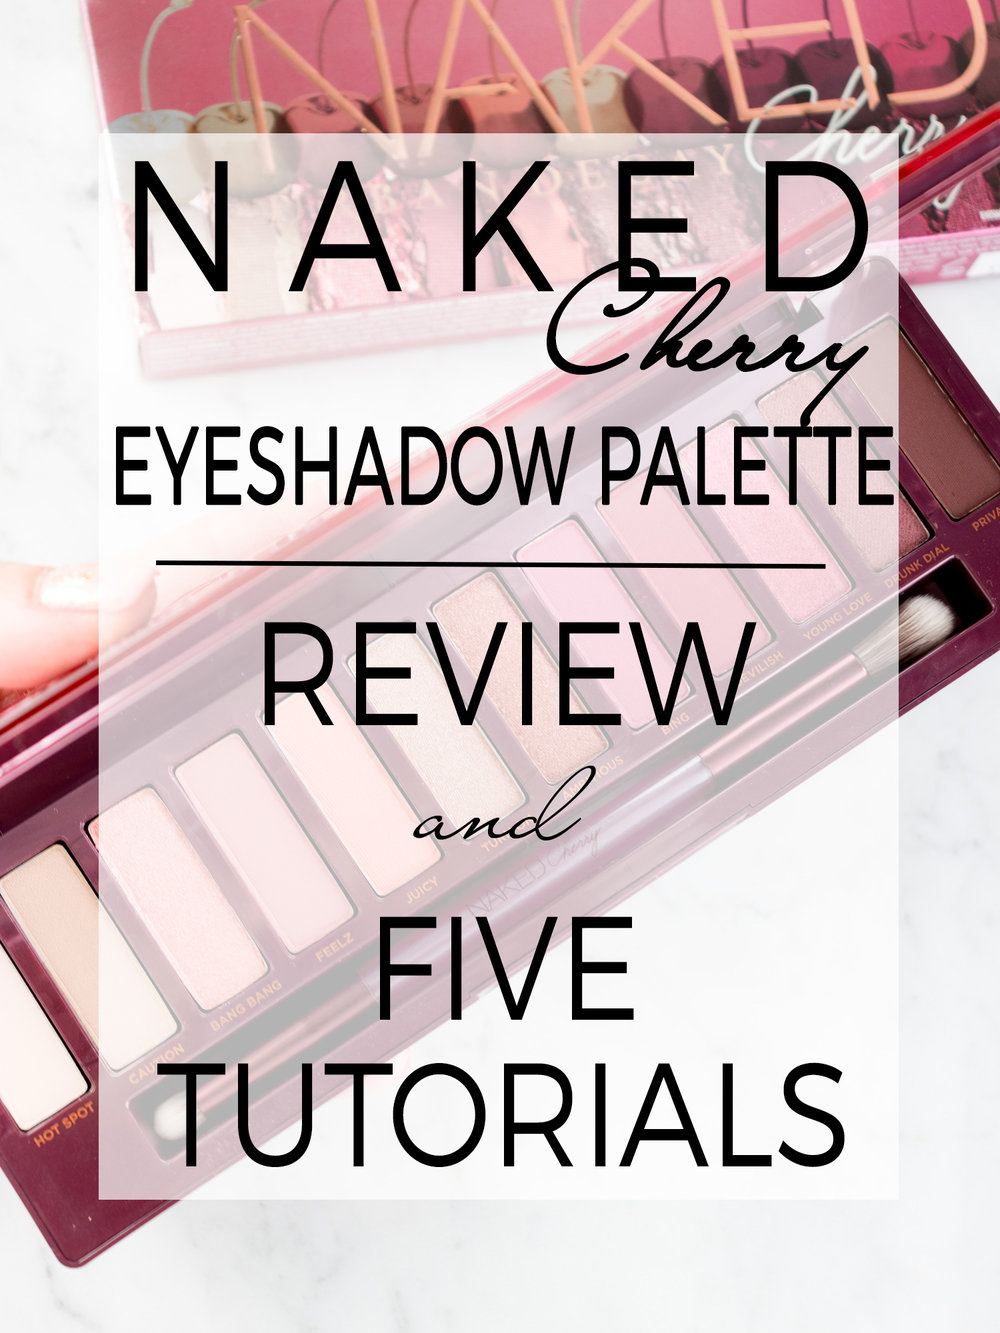 Urban Decay NAKED Cherry Palette + 5 Tutorials